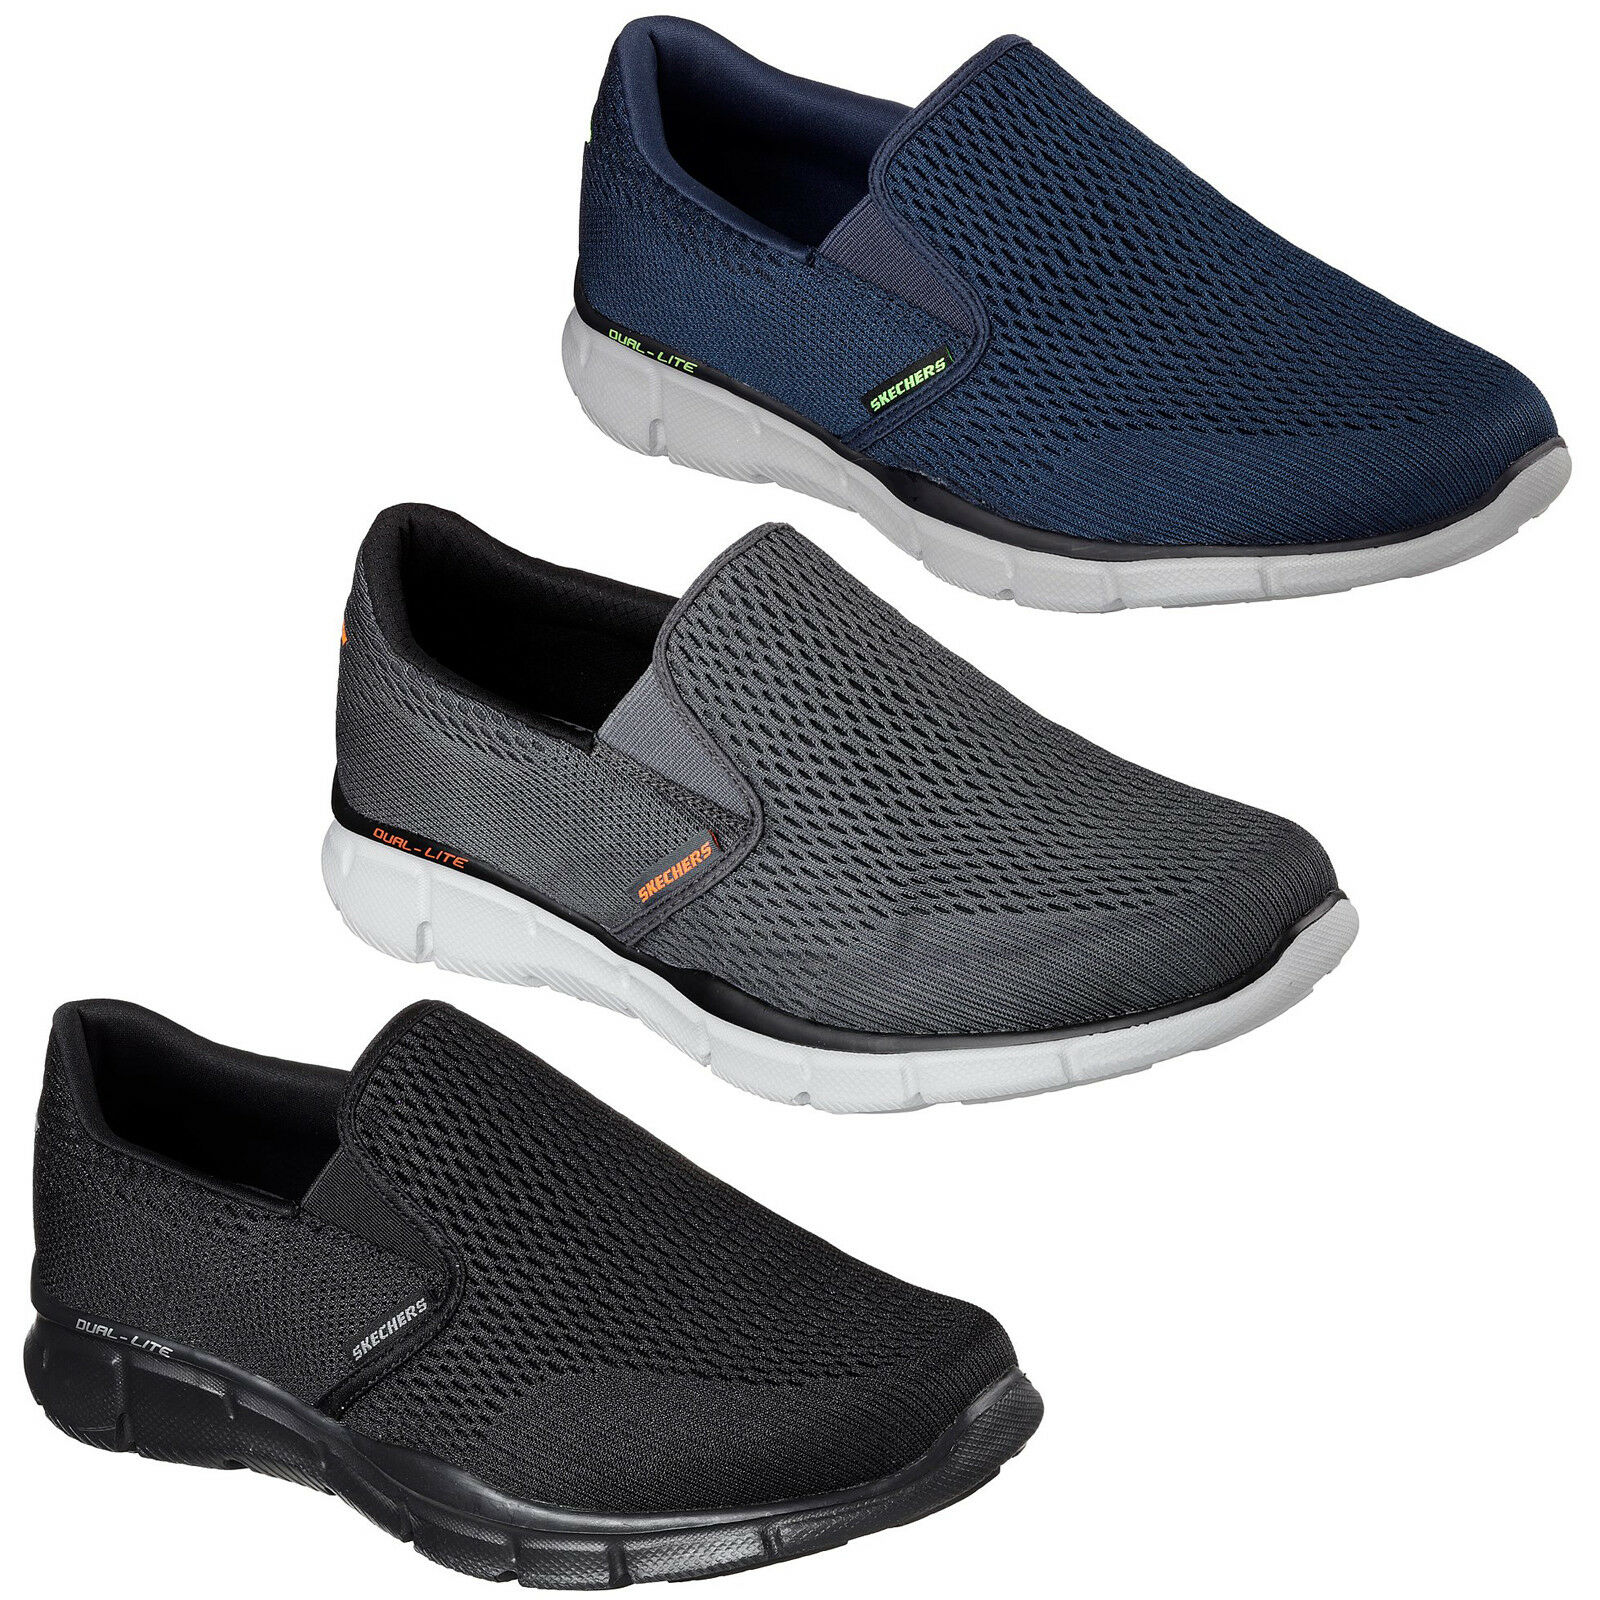 ff4b4b4c23ec Details about Skechers Equalizer Double Play Trainers Mens Memory Foam Knit  Mesh Slip On Shoes